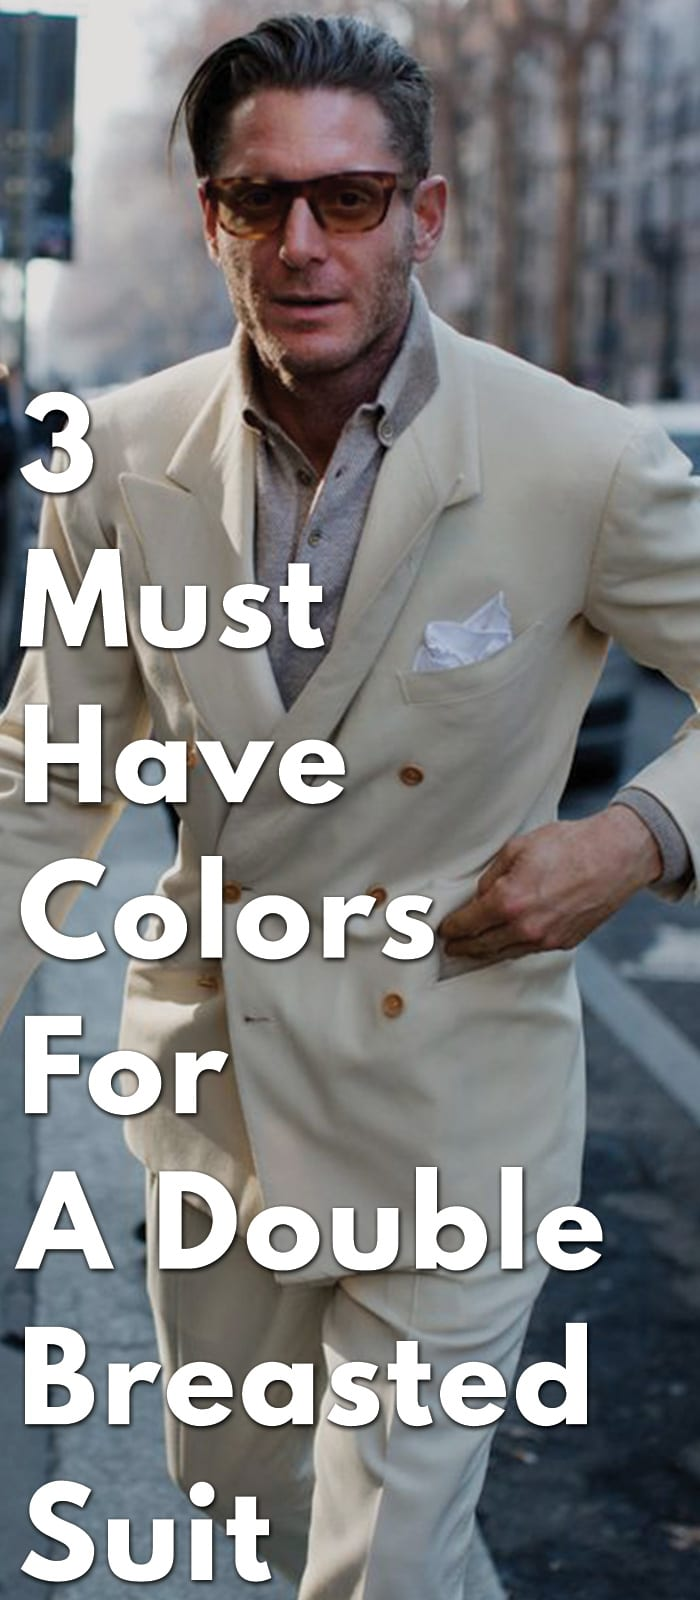 3-Must-Have-Colors-For-A-Double-Breasted-Suit